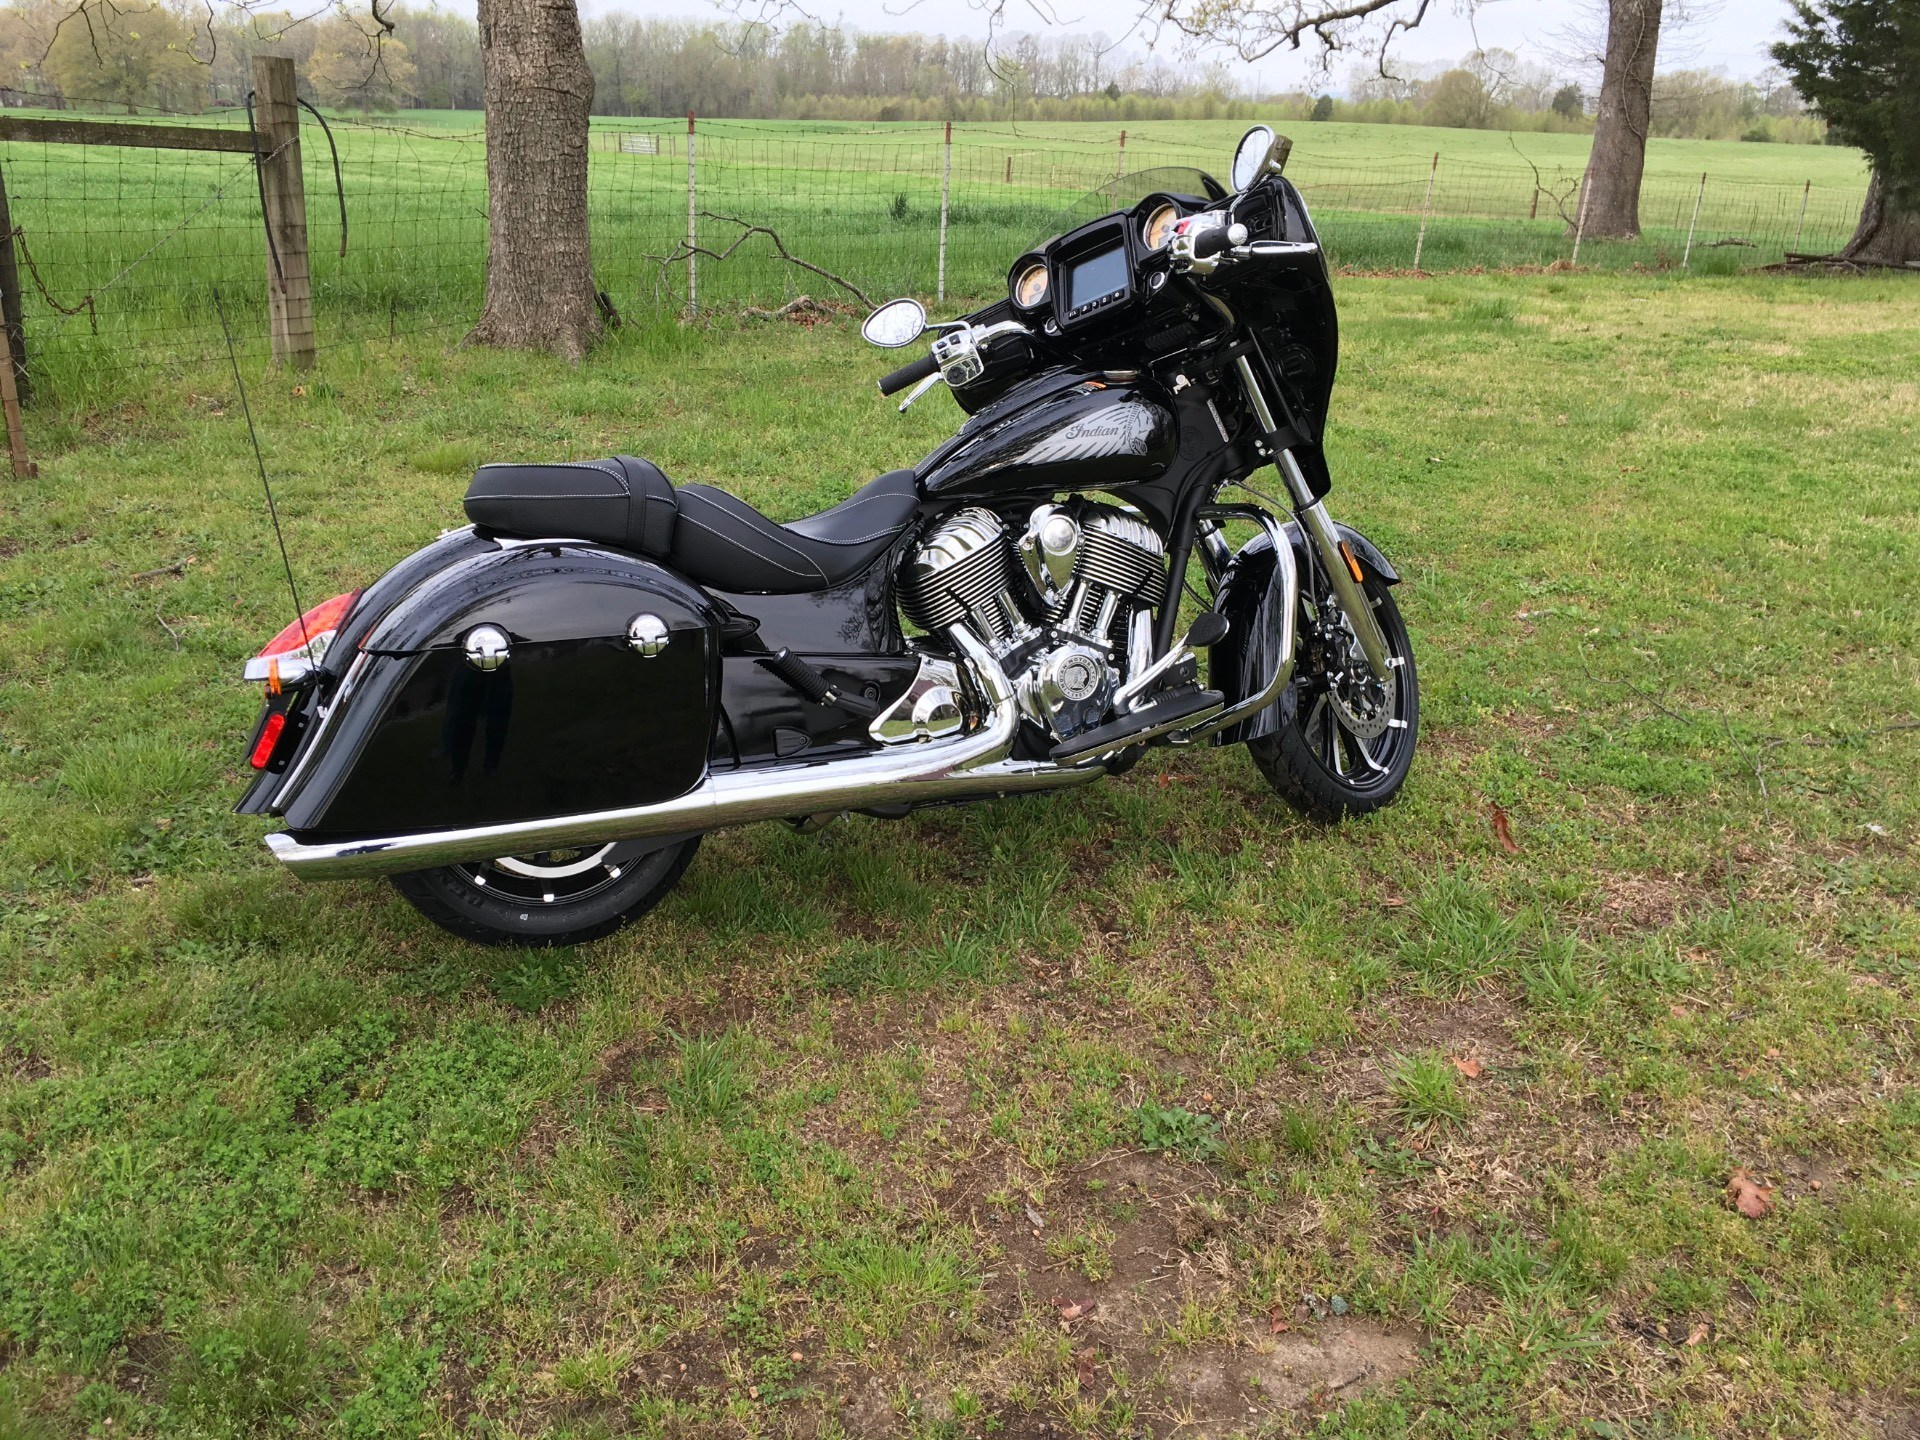 2017 Indian Chieftain Limited 4